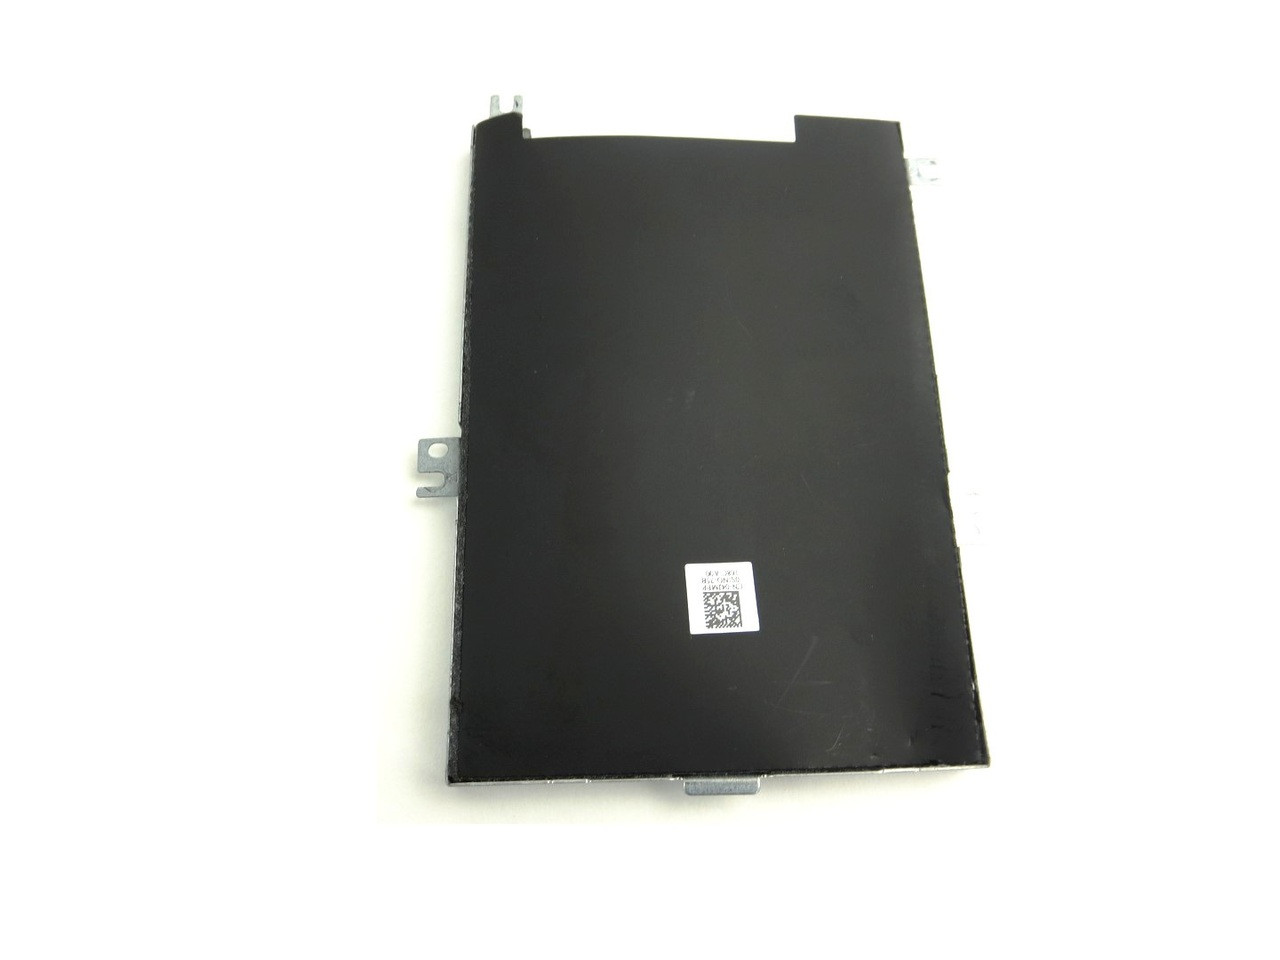 Dell Latitude E5470 Hard Drive Caddy Bracket -  4JMFP